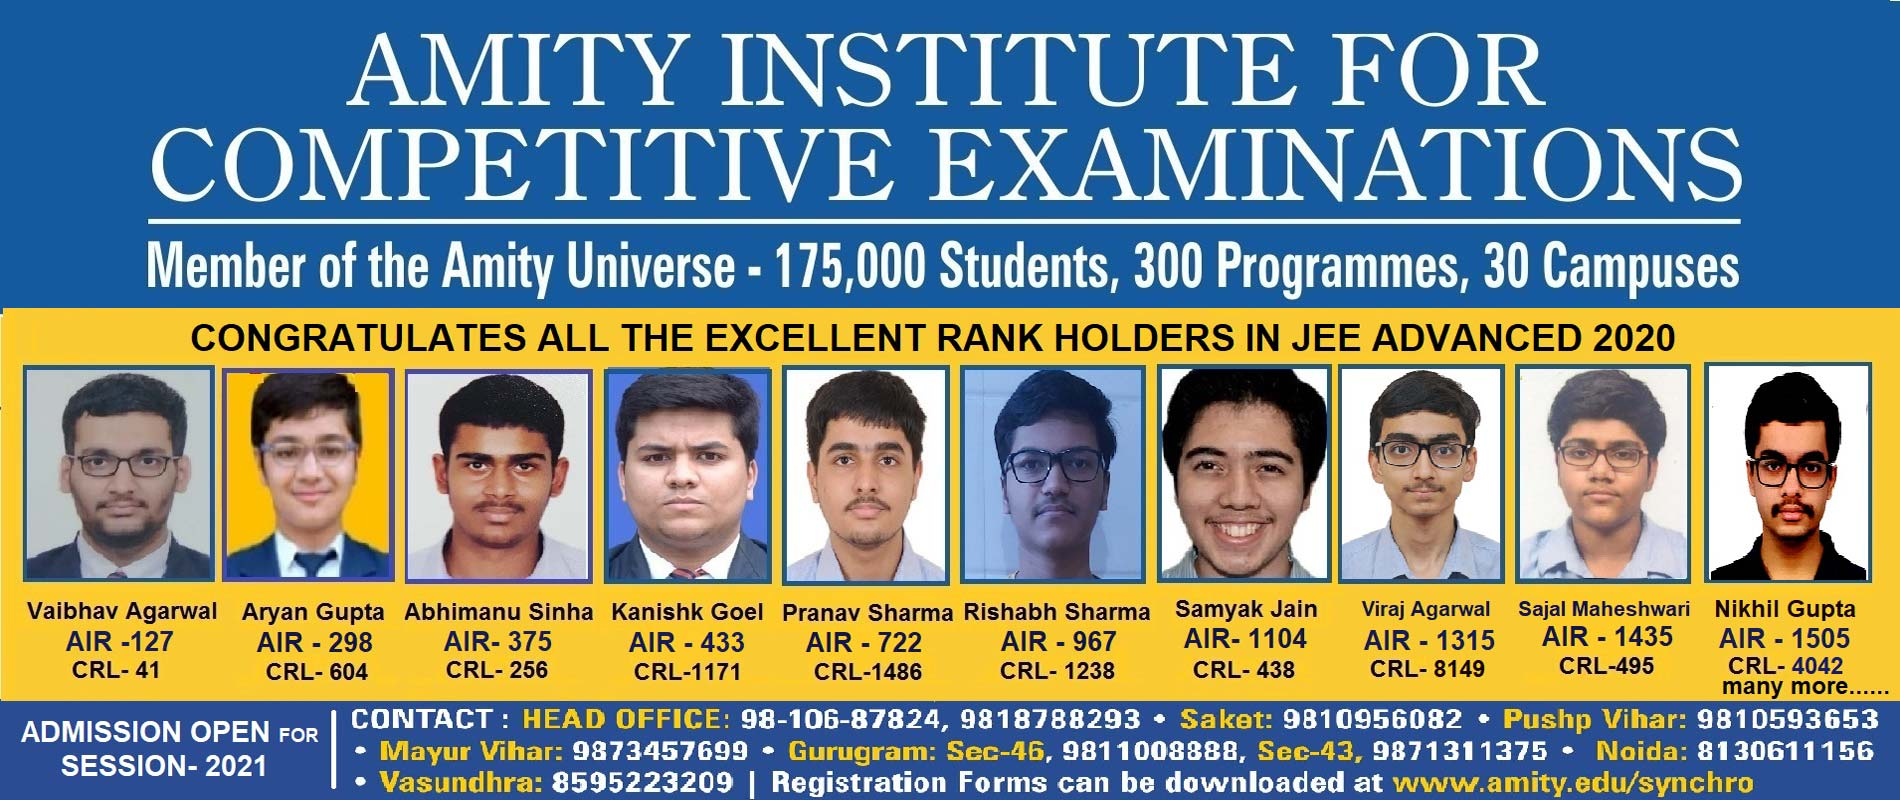 Amity Institute for Competitive Examination